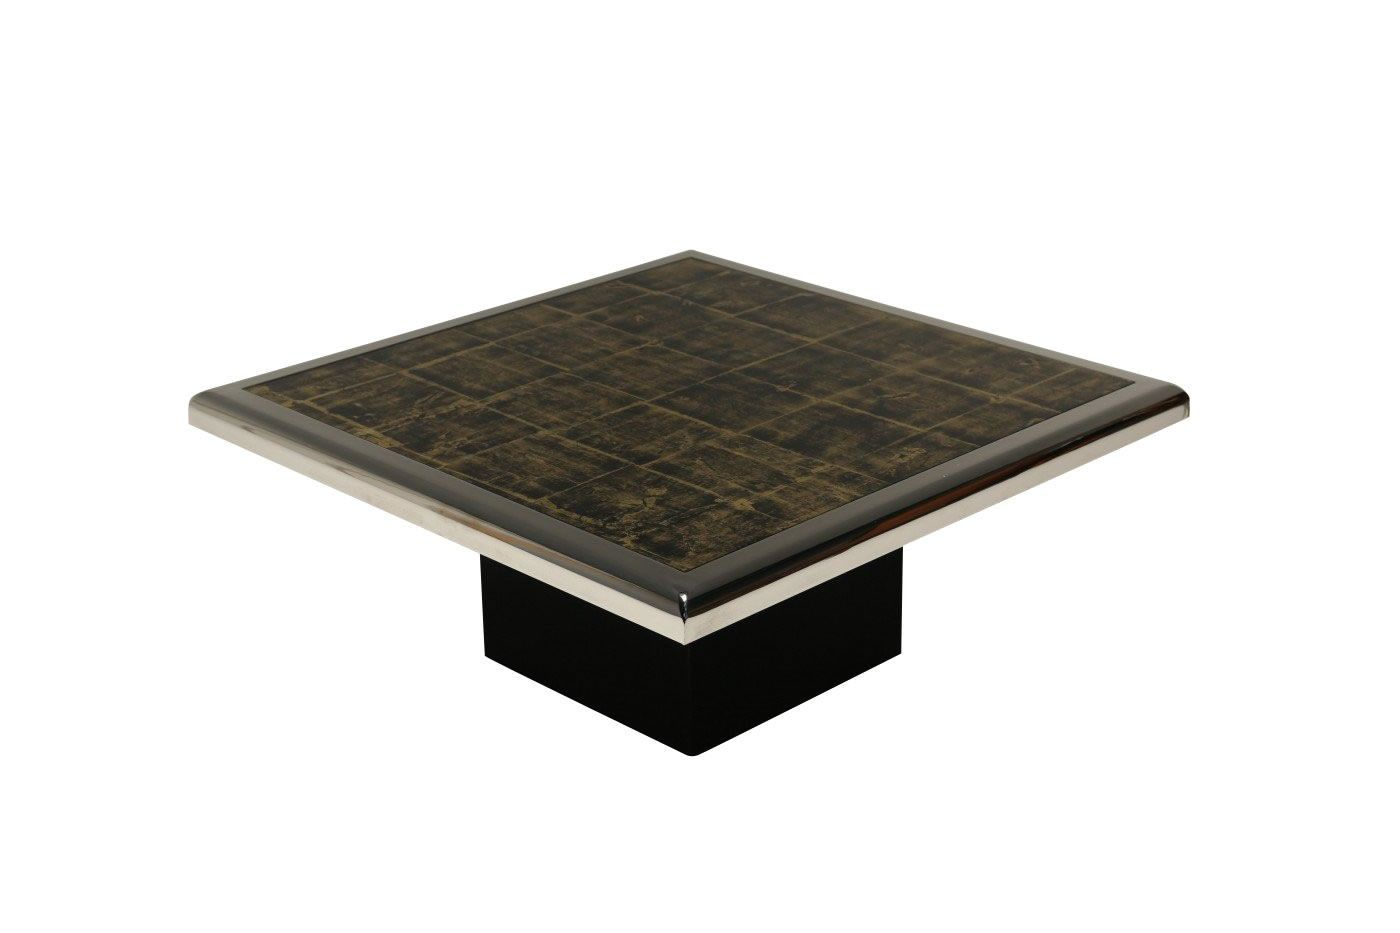 Black And Gold Floating Coffee Table In Chrome From Belgochrom For Sale At Pamono